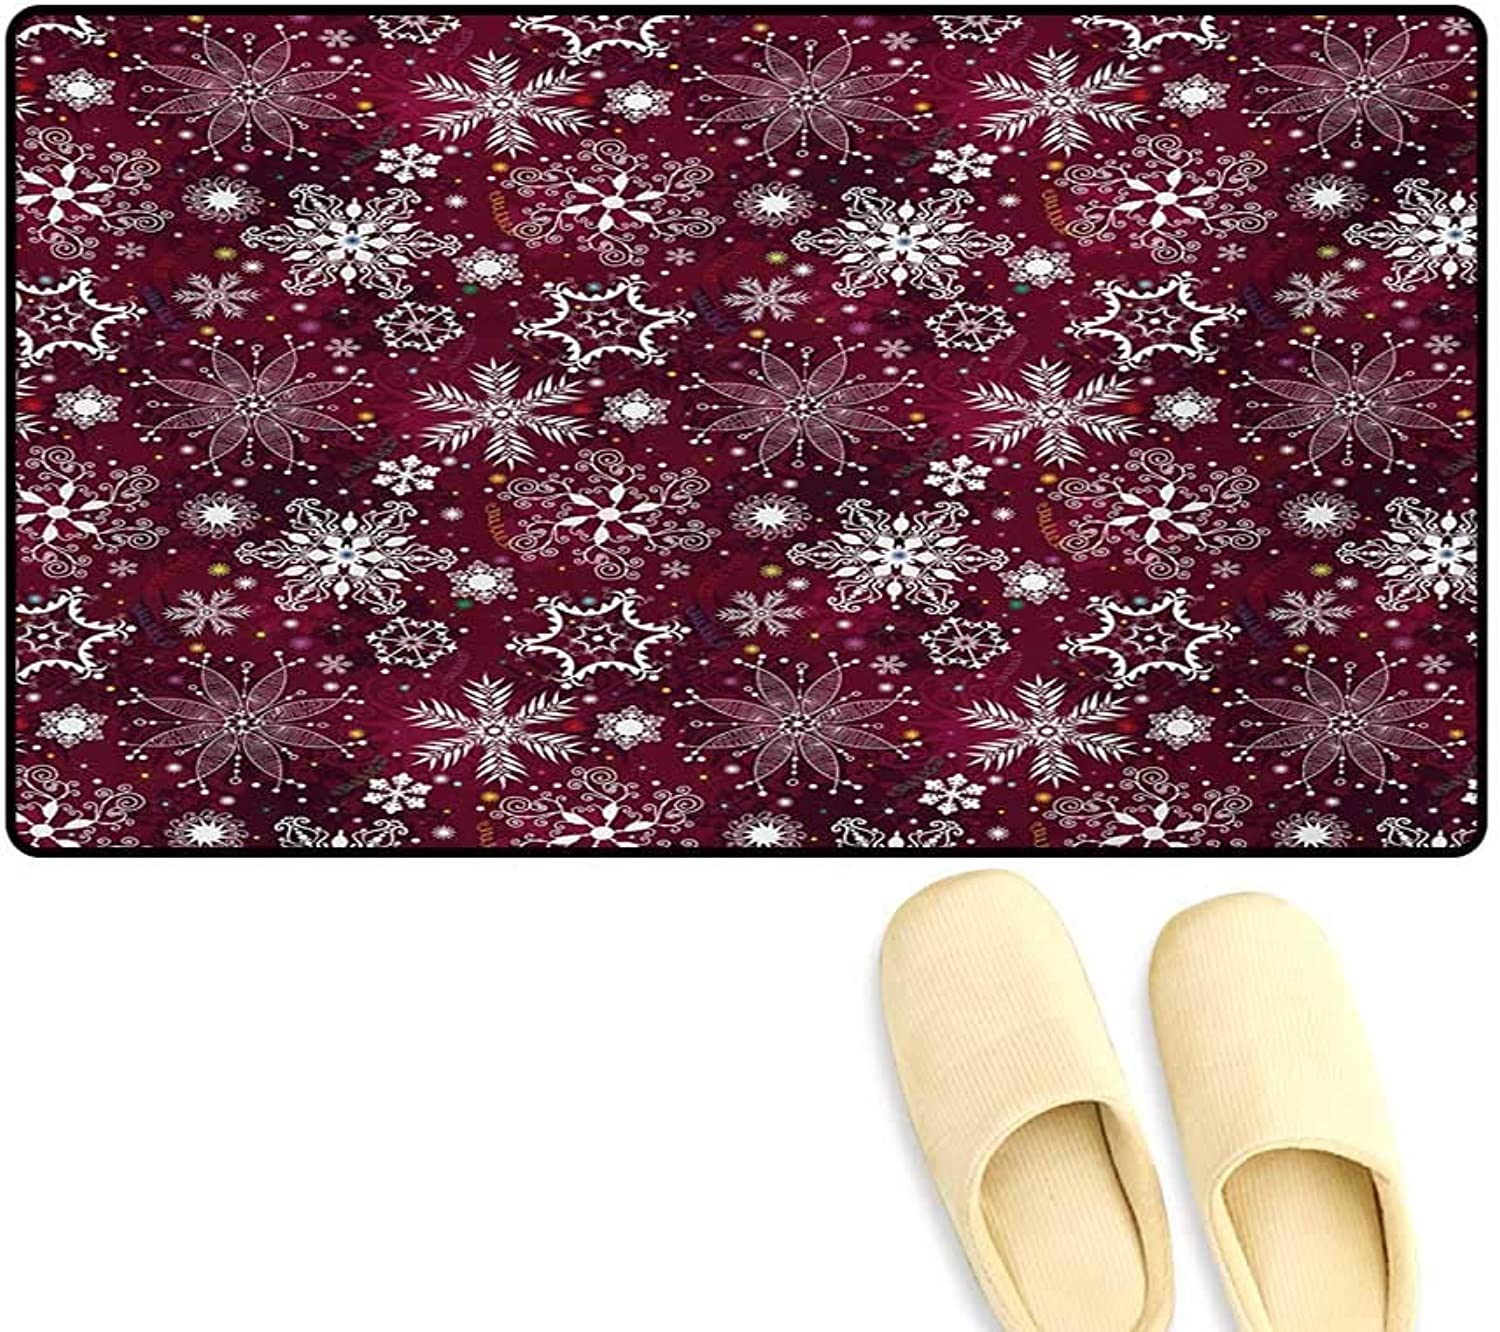 Door-mat,Floral Flakes with colorful Swirls Dots and Stars Confetti Xmas Party,Door Mats for Inside Bathroom Mat Non Slip,Maroon White Multicolor,20 x32